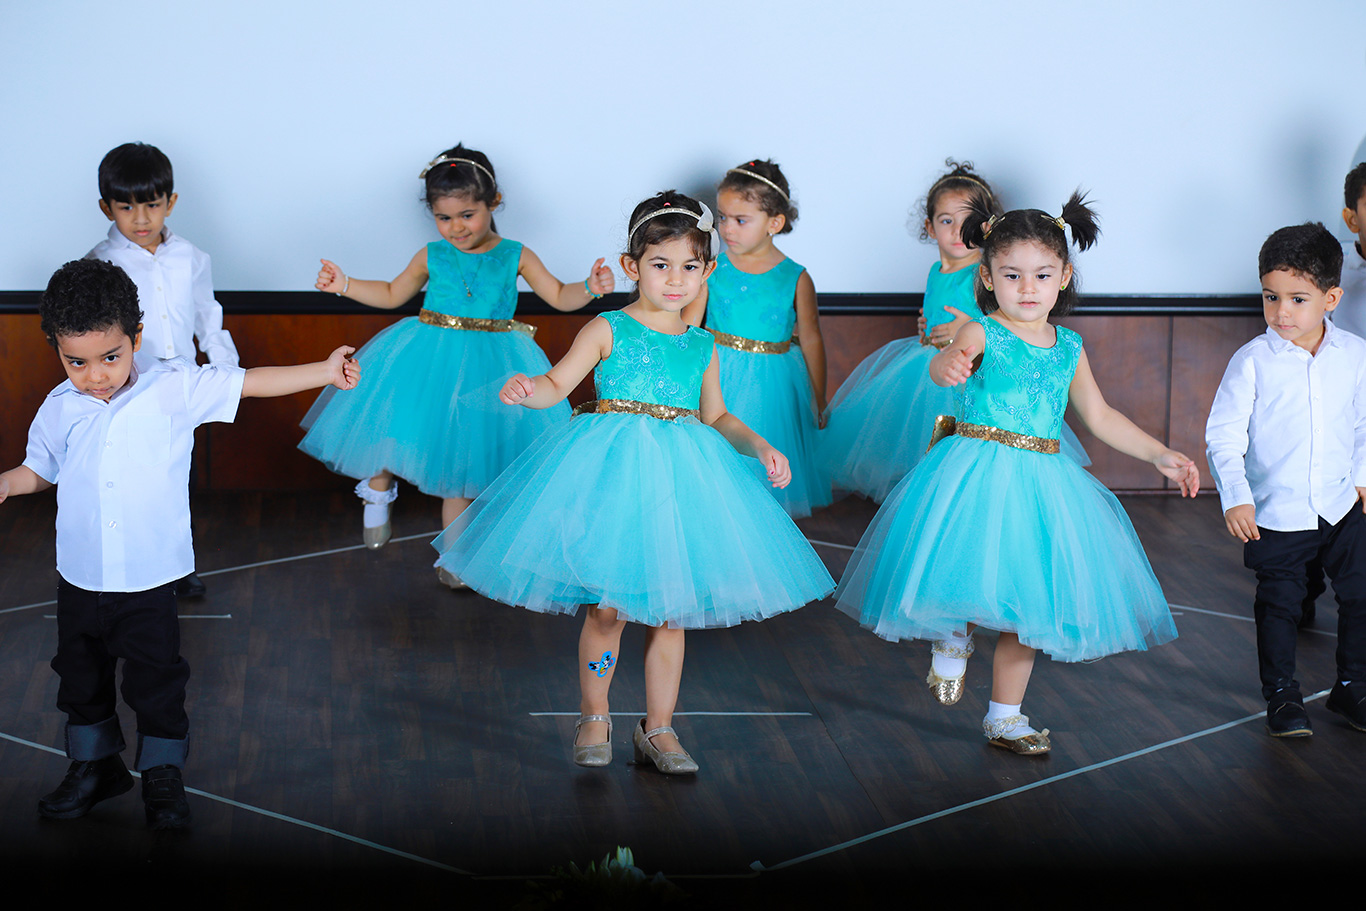 Professional School Photography Companies in Doha Qatar